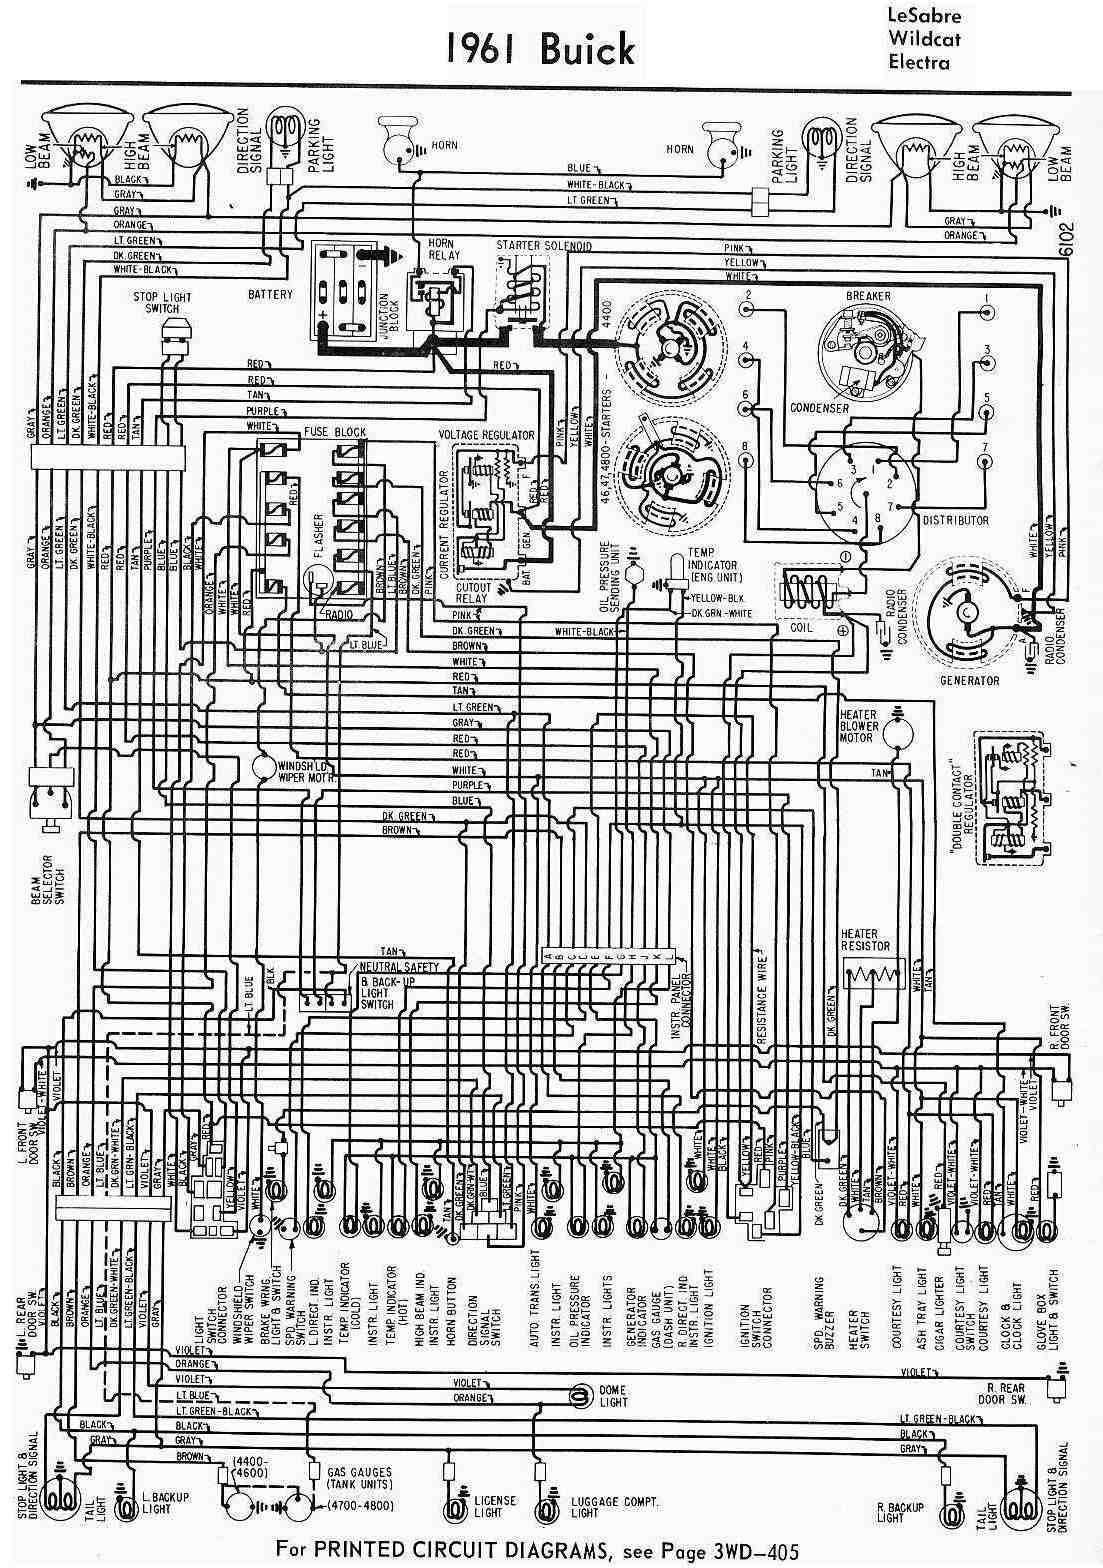 Pleasing 67 Buick Wiring Diagram Wiring Diagram Wiring Digital Resources Indicompassionincorg